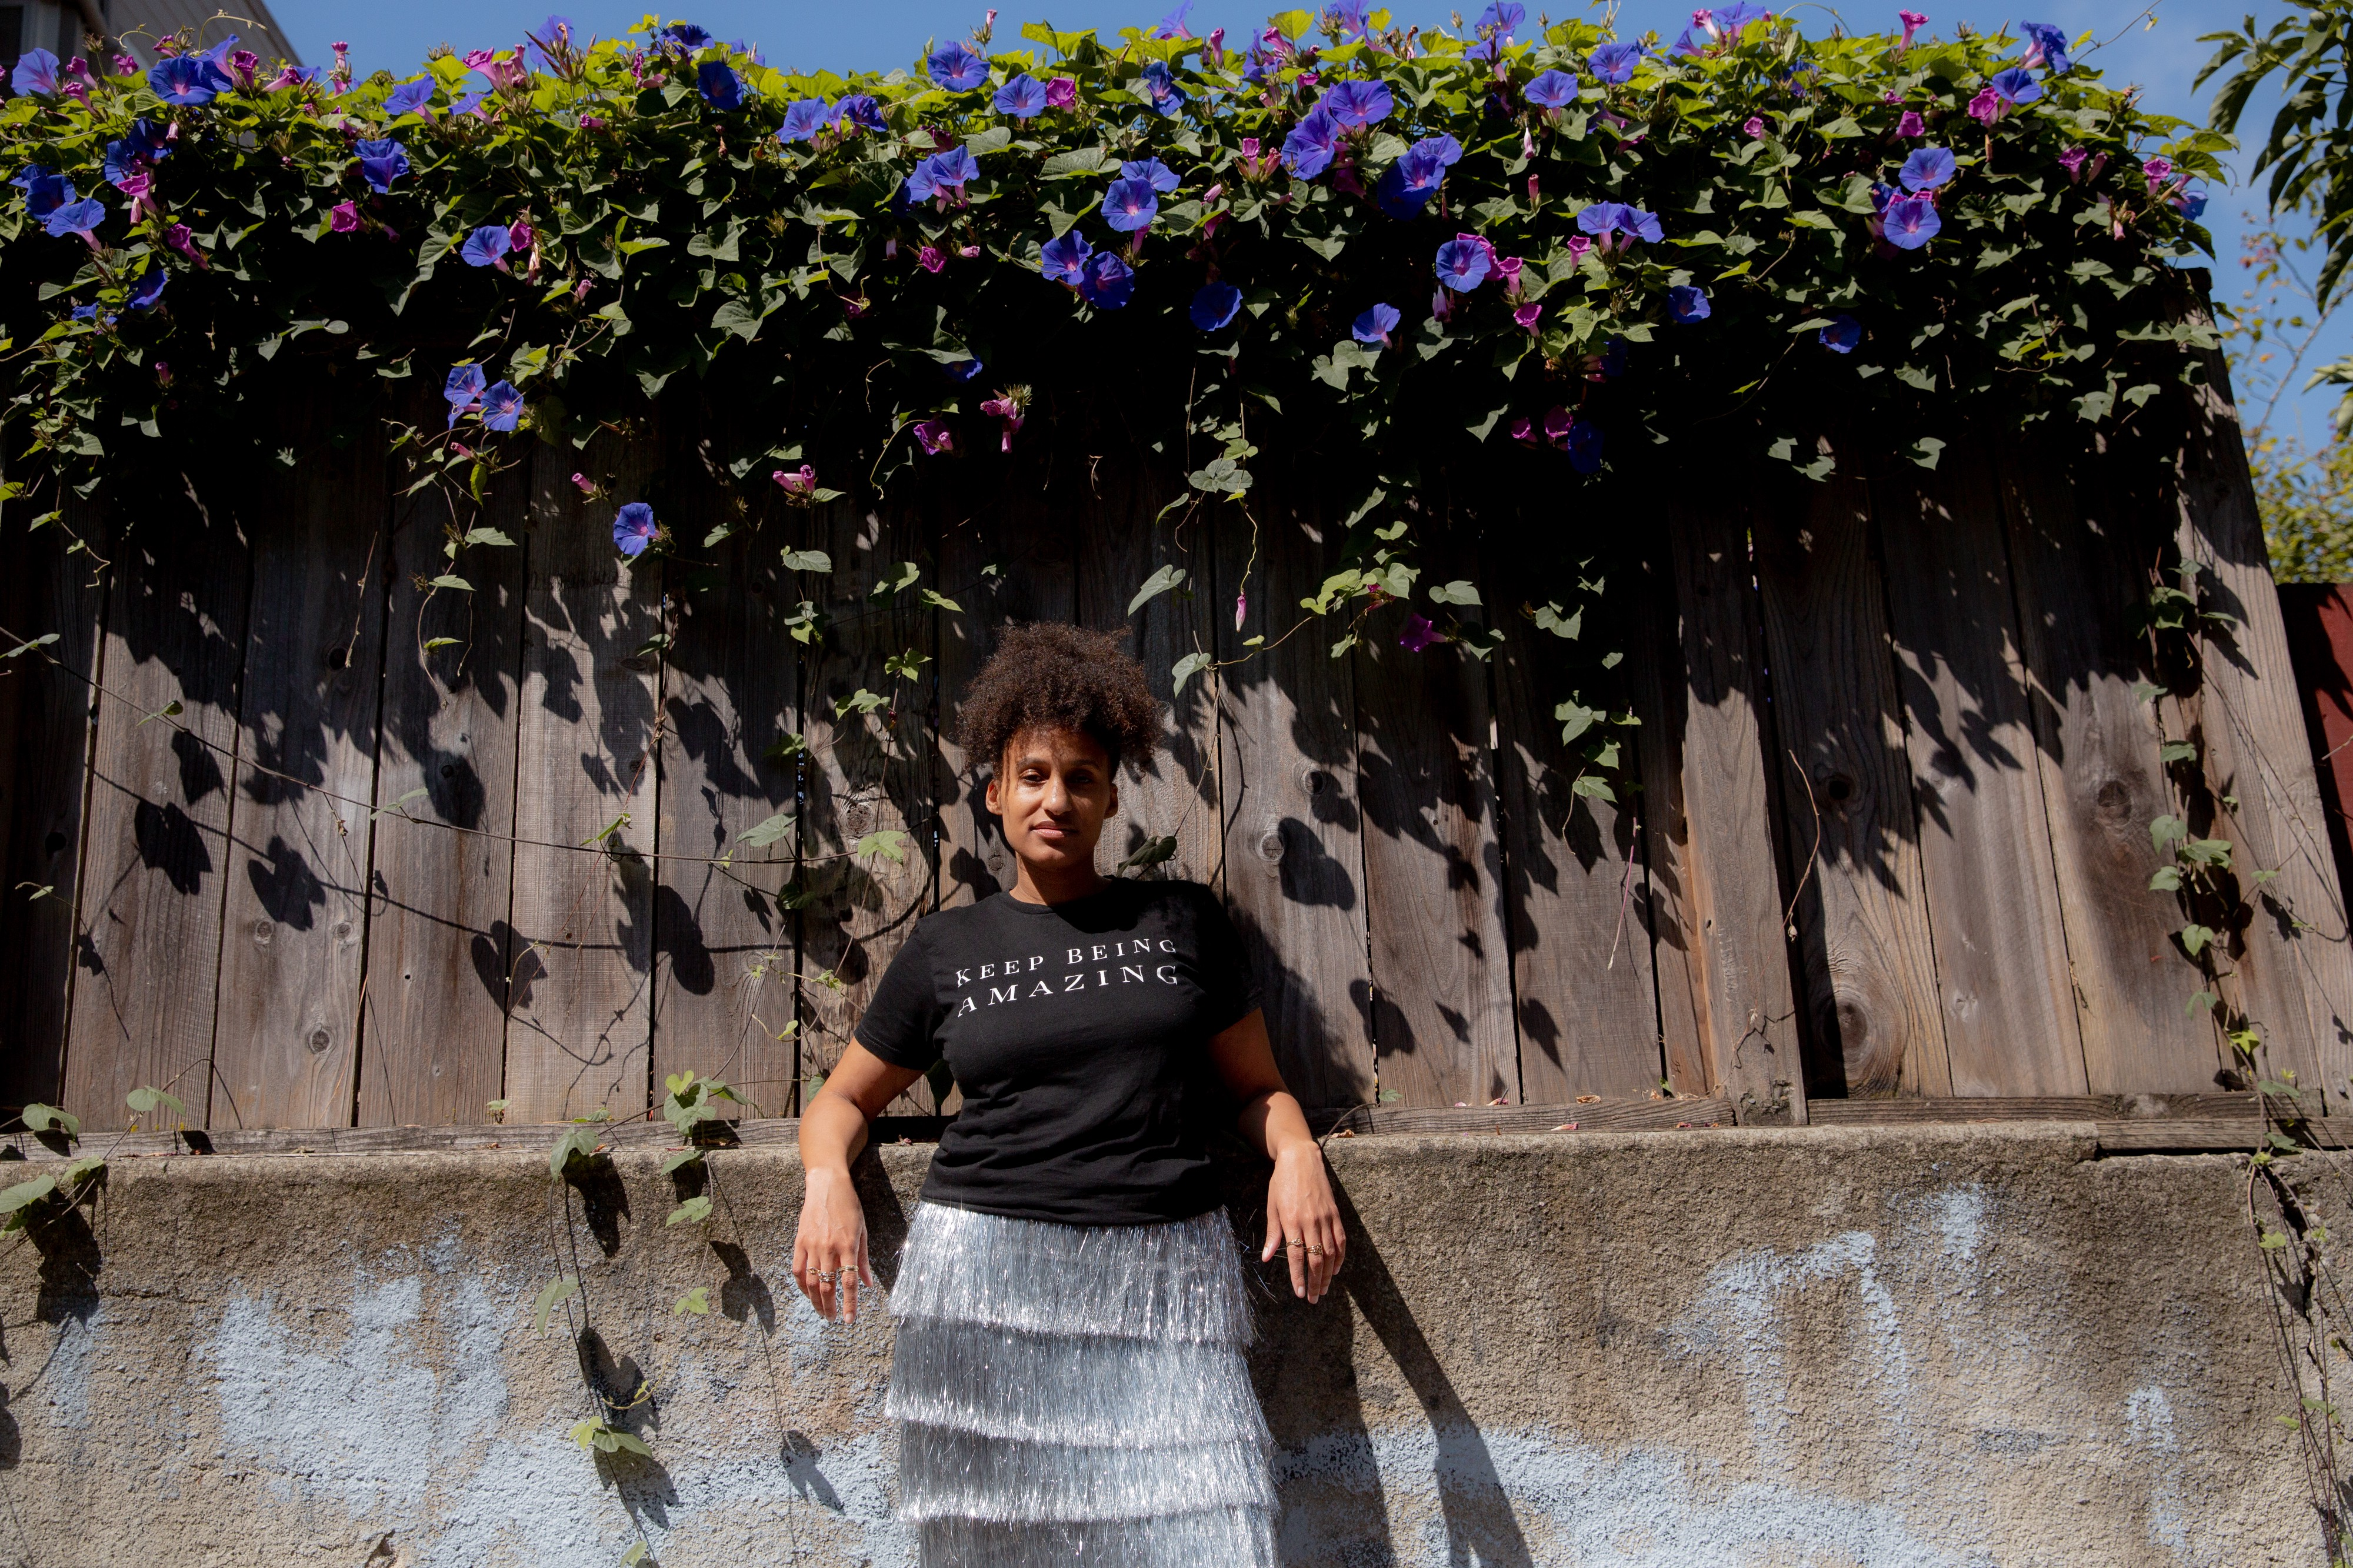 Akilah Cadet leaning backwards on her elbows against a concrete retaining wall. A fence with flowering ivy is above her.